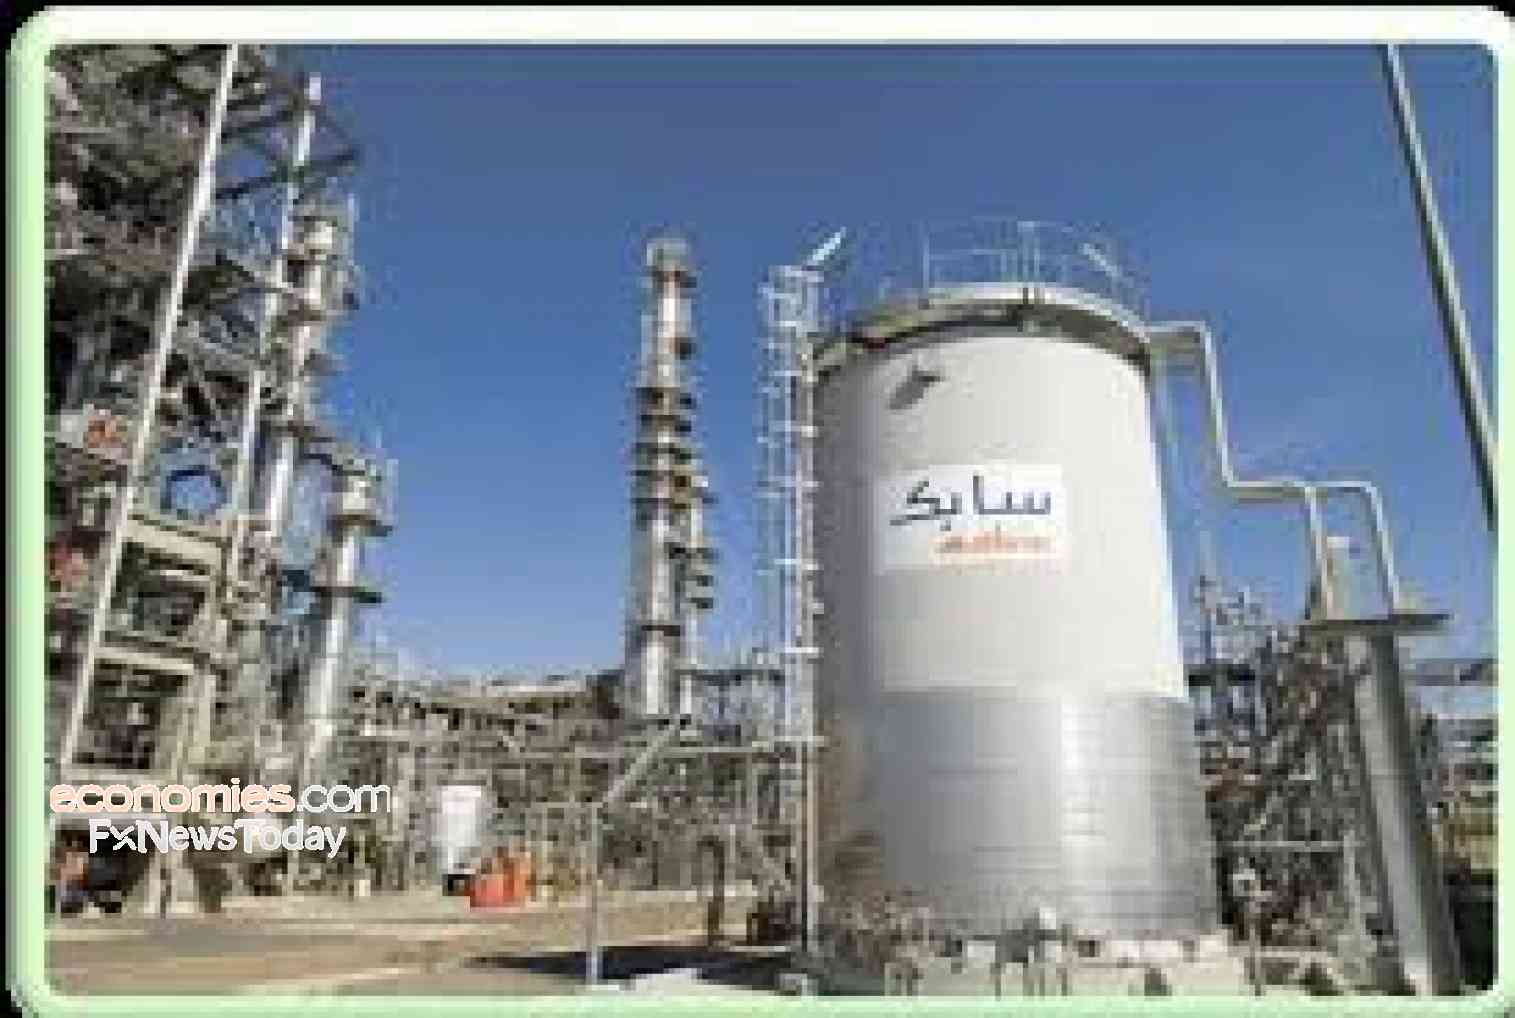 SABIC plans to merge two fully-owned subsidiaries